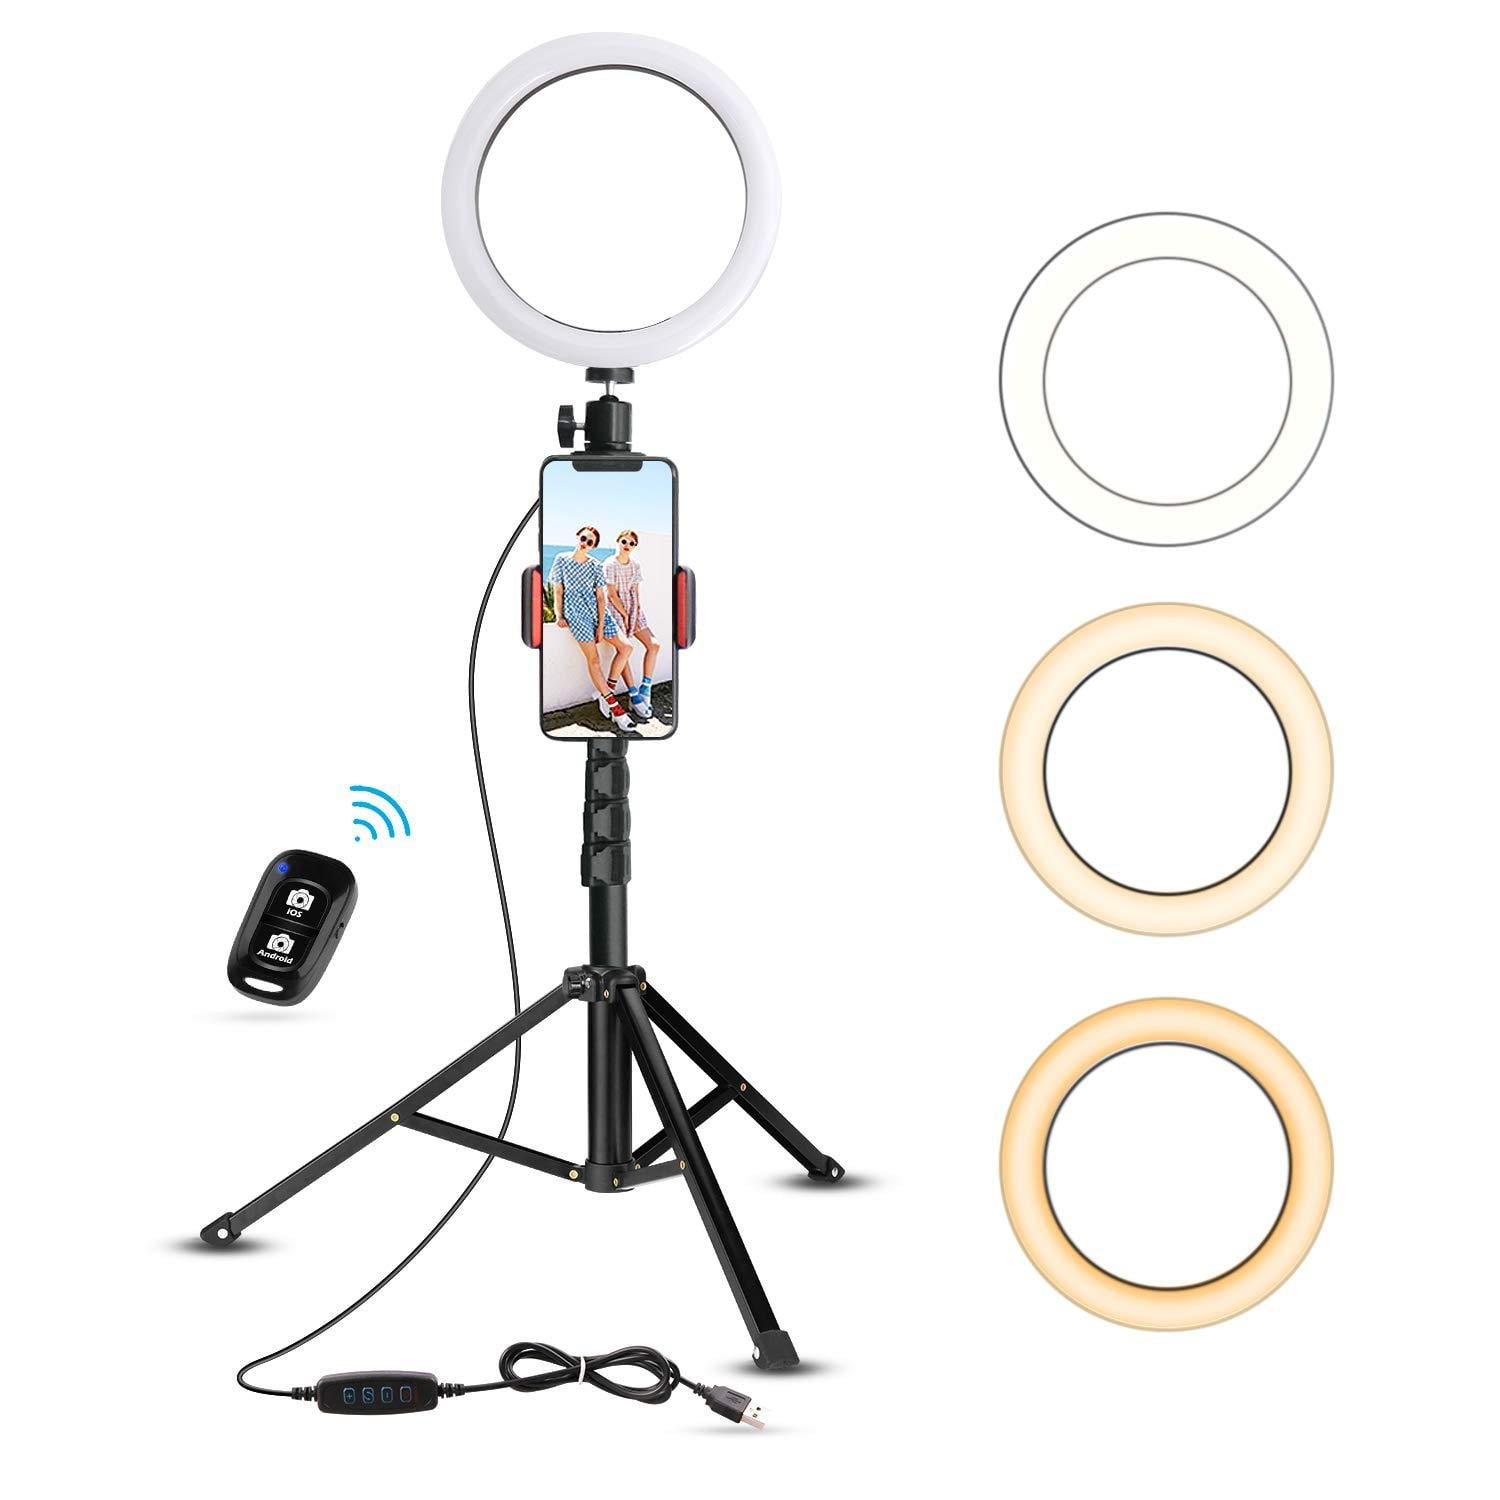 8 Ring Light with Tripod Stand and Template Tool Set for Artwork